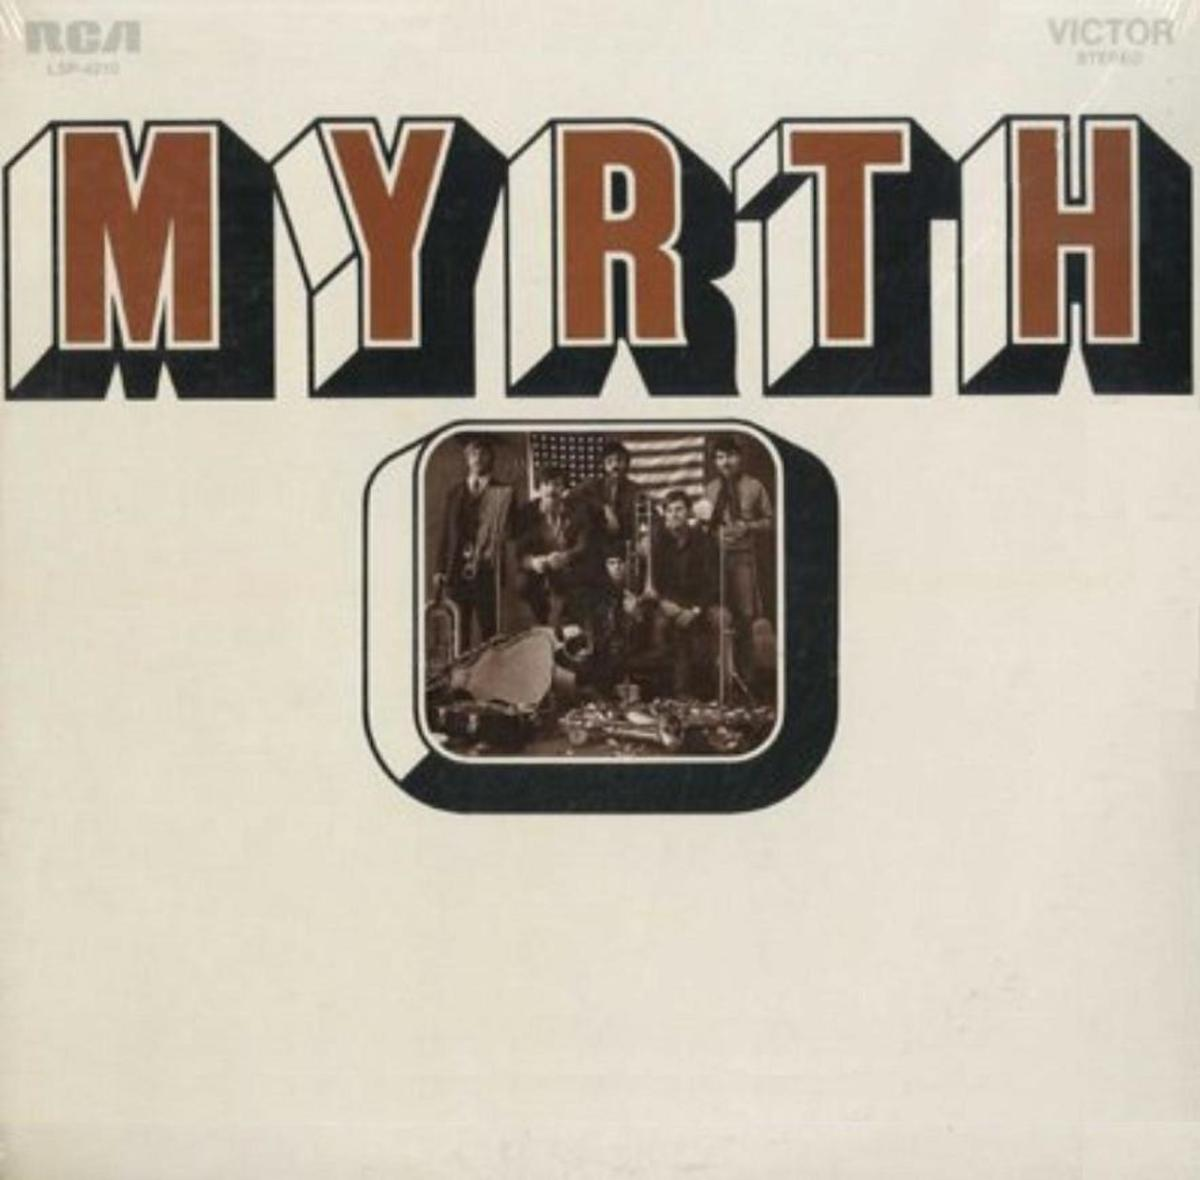 Myrth: An Undiscovered Rock Jazz Band of the '60s